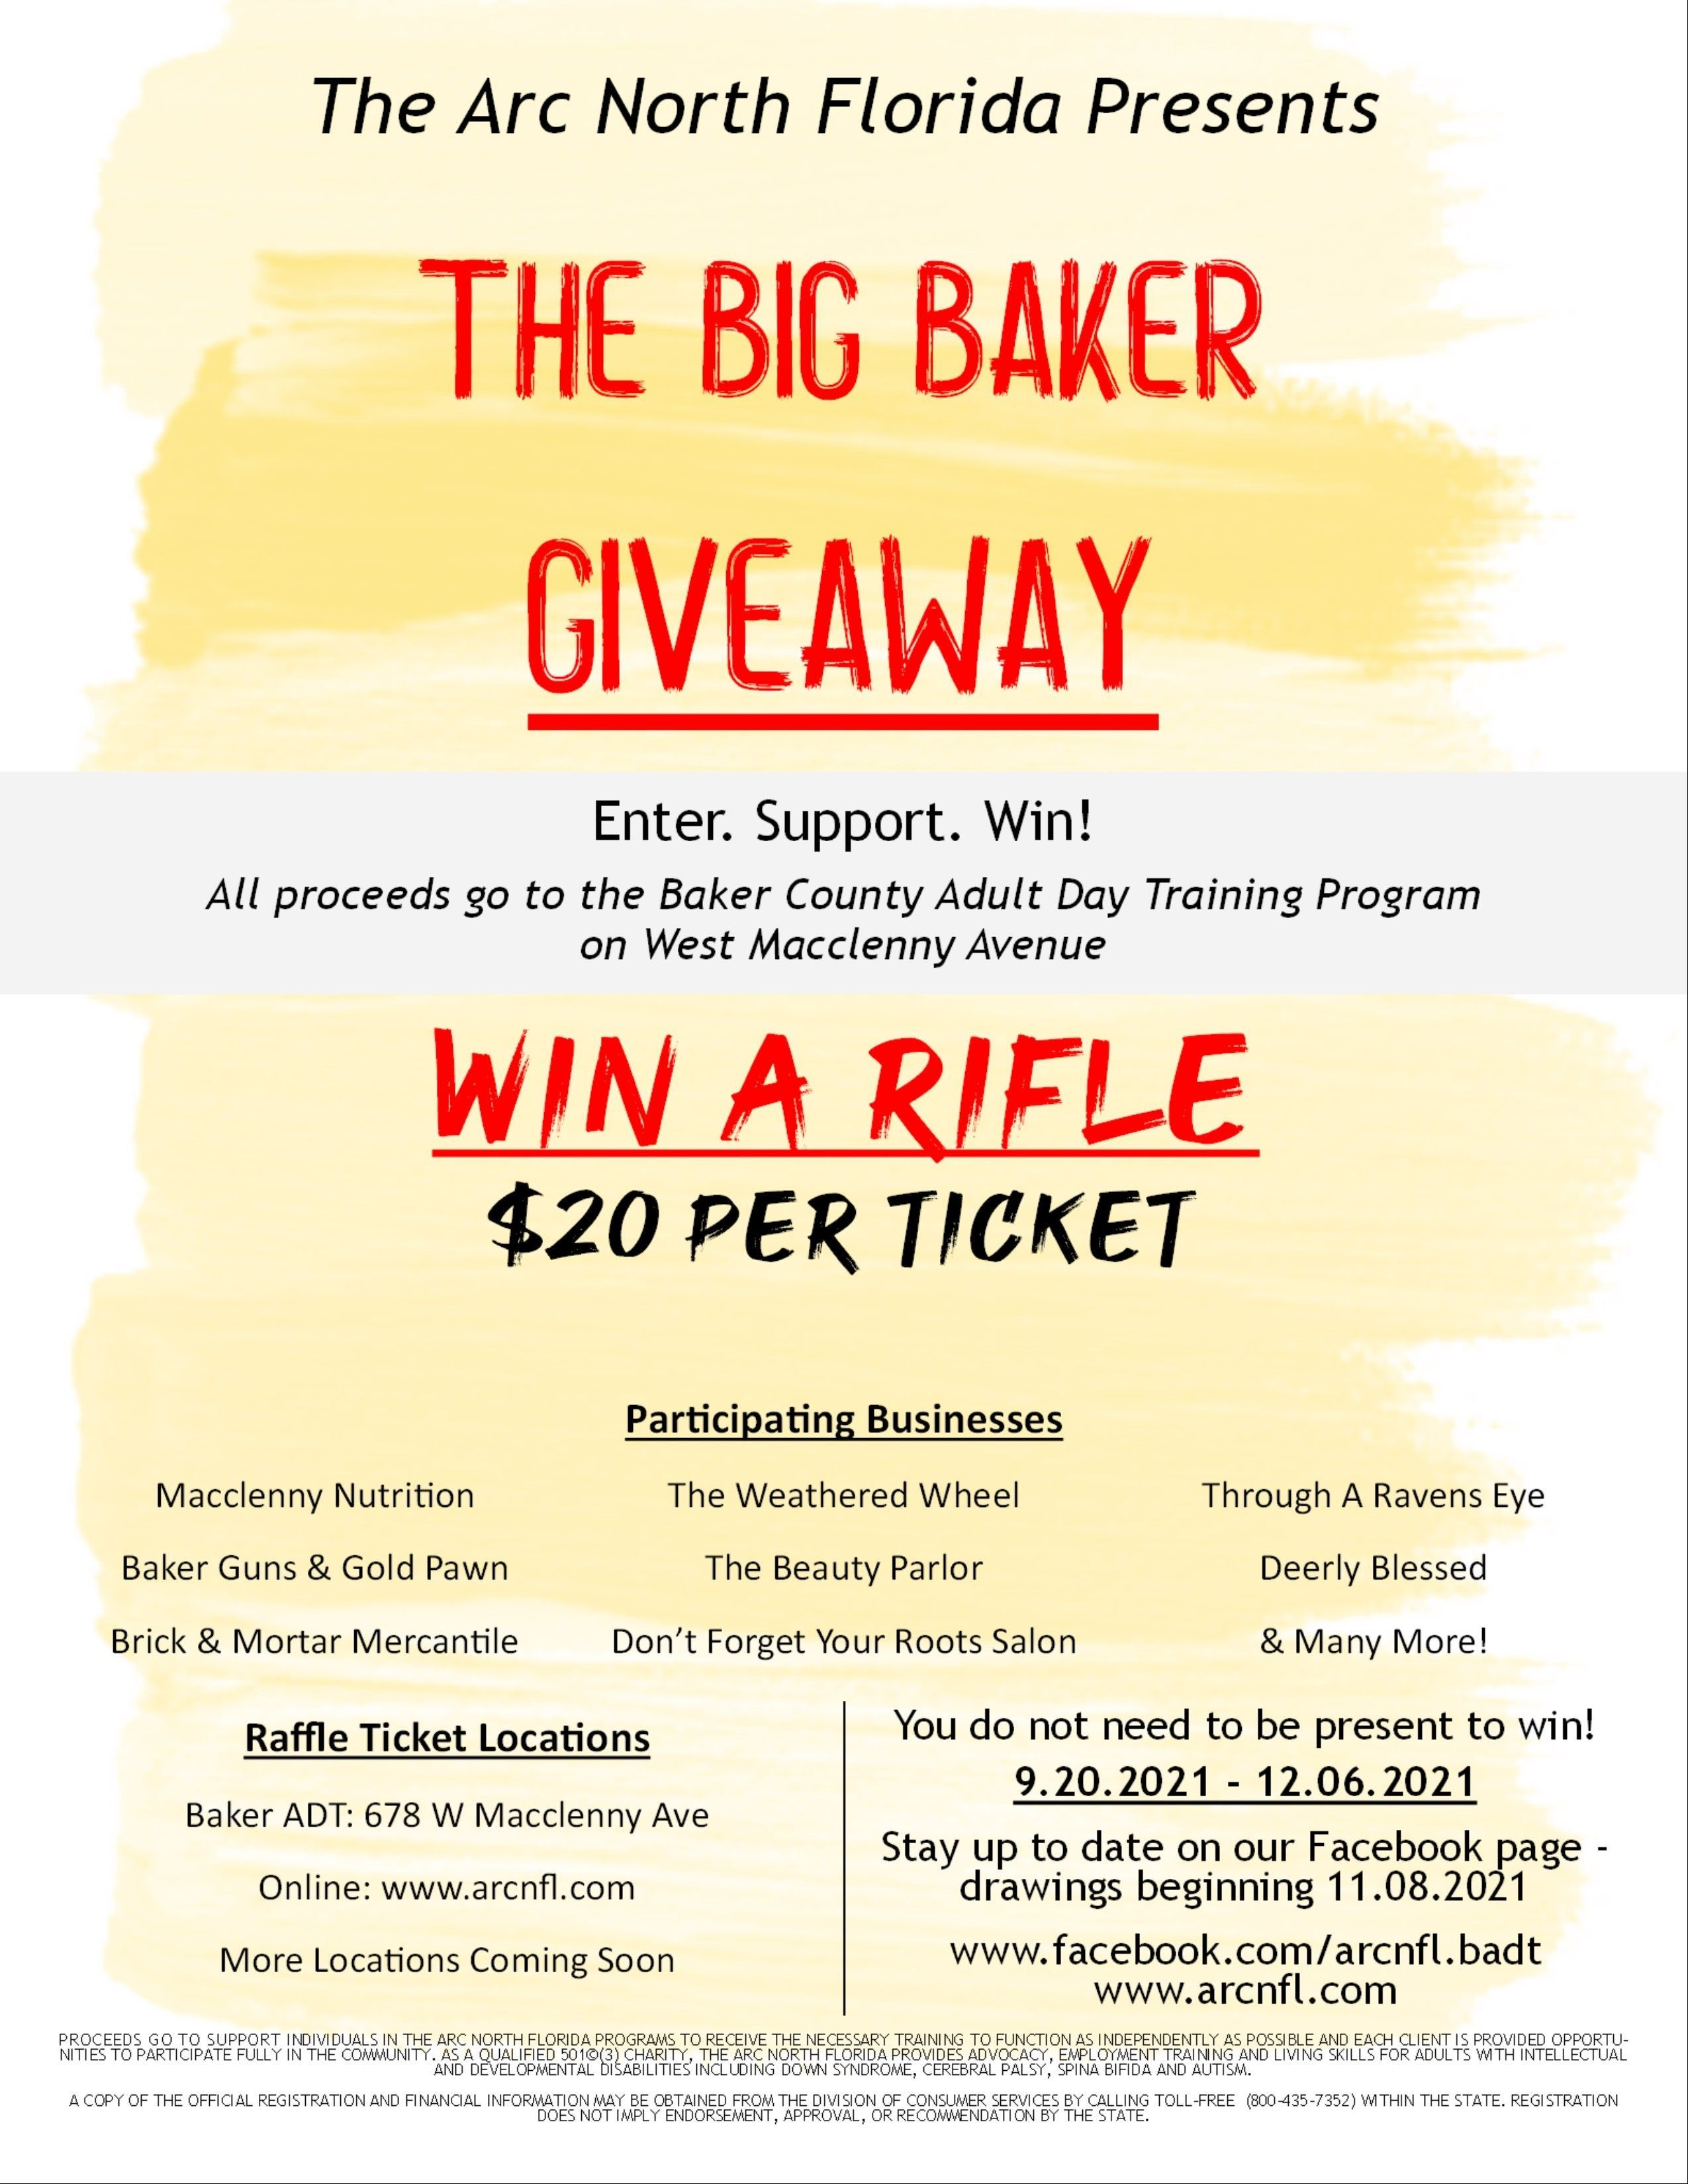 The Big Baker Giveaway is here!